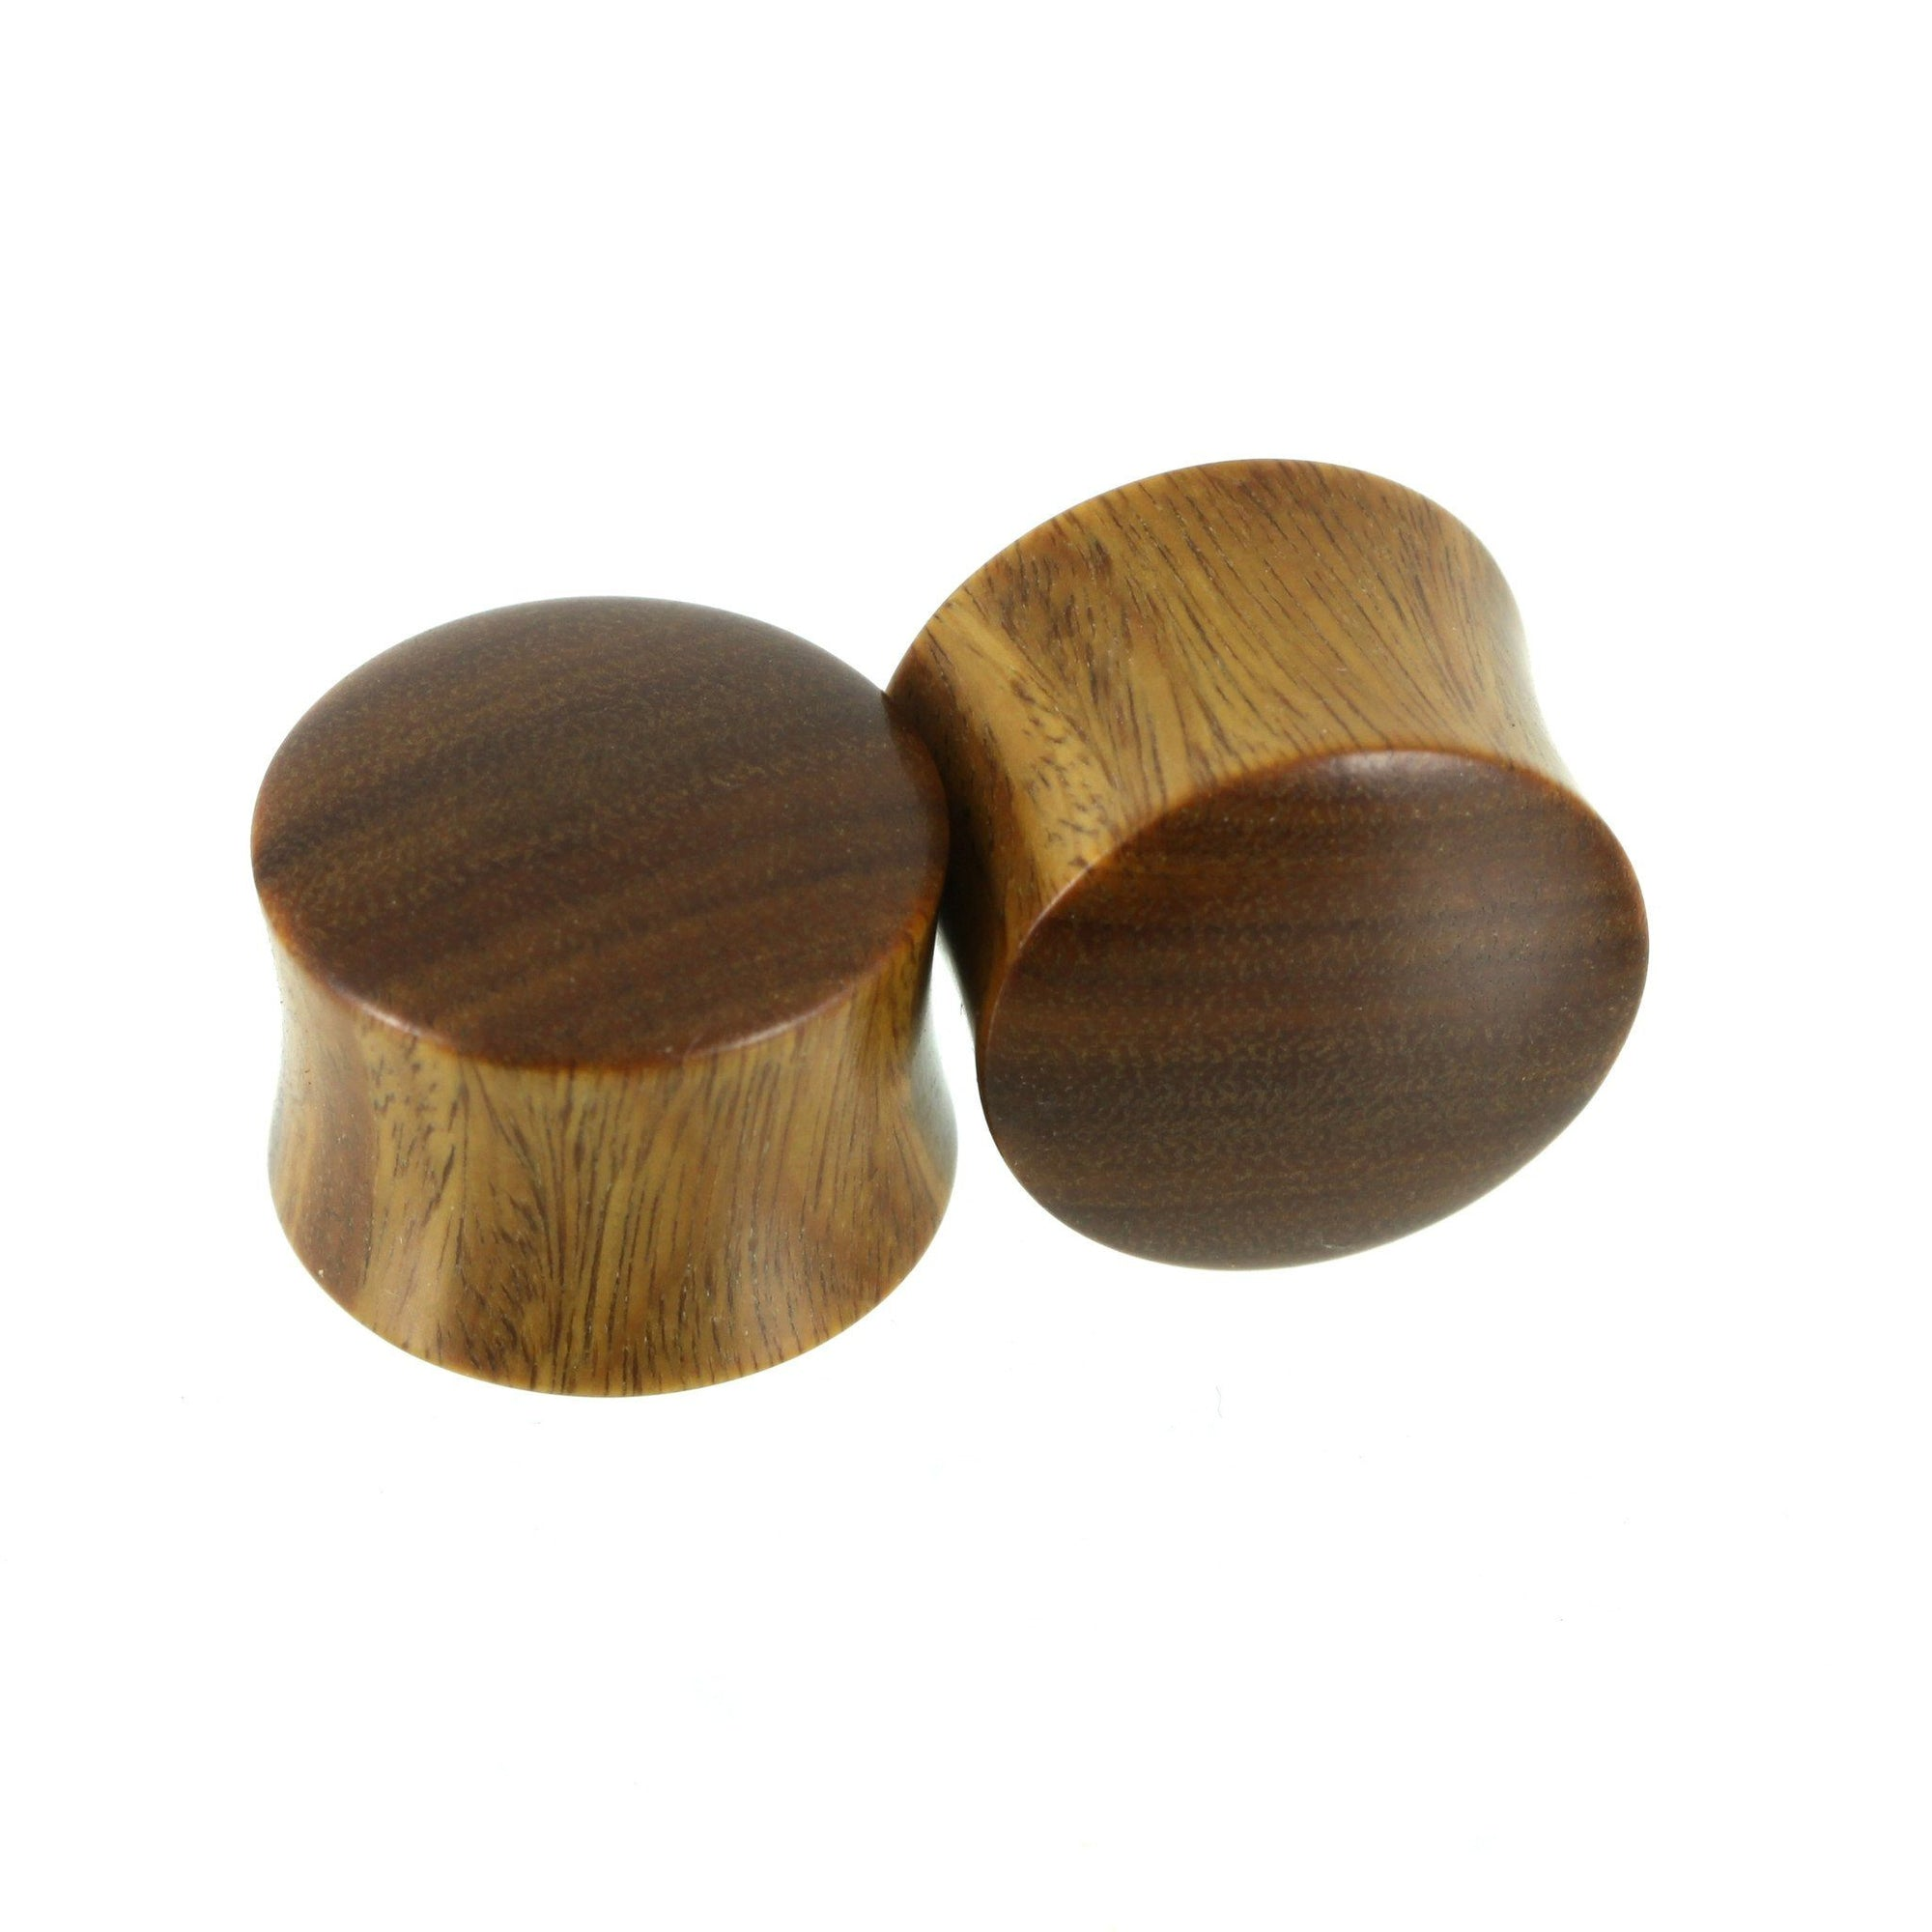 Argentine Lignum Vitae Plugs, jewellery, body jewellery. - Southshore Adornments